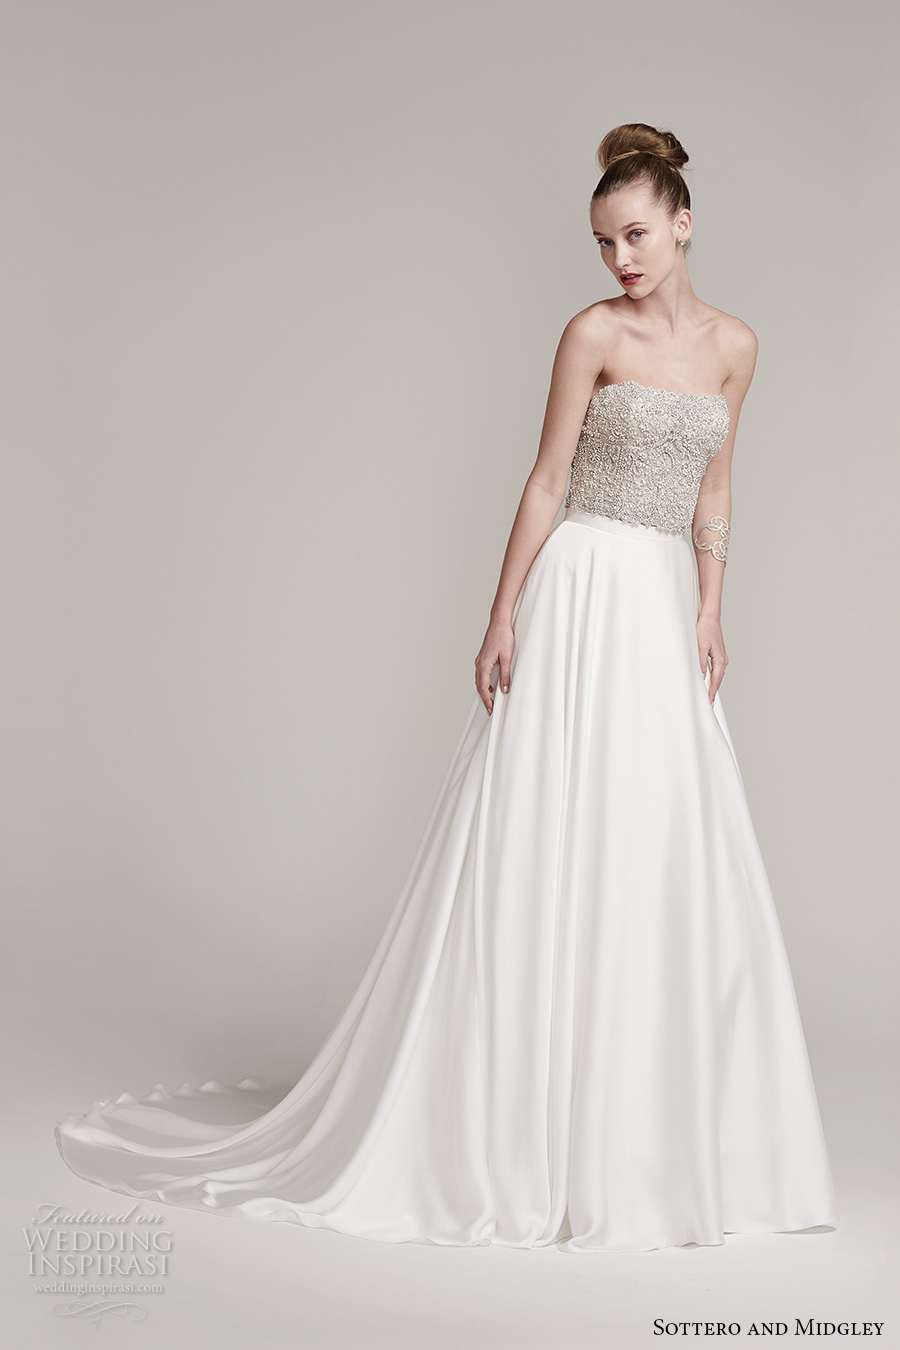 Sottero and midgley fall 2016 wedding dresses am lie for Long straight wedding dresses